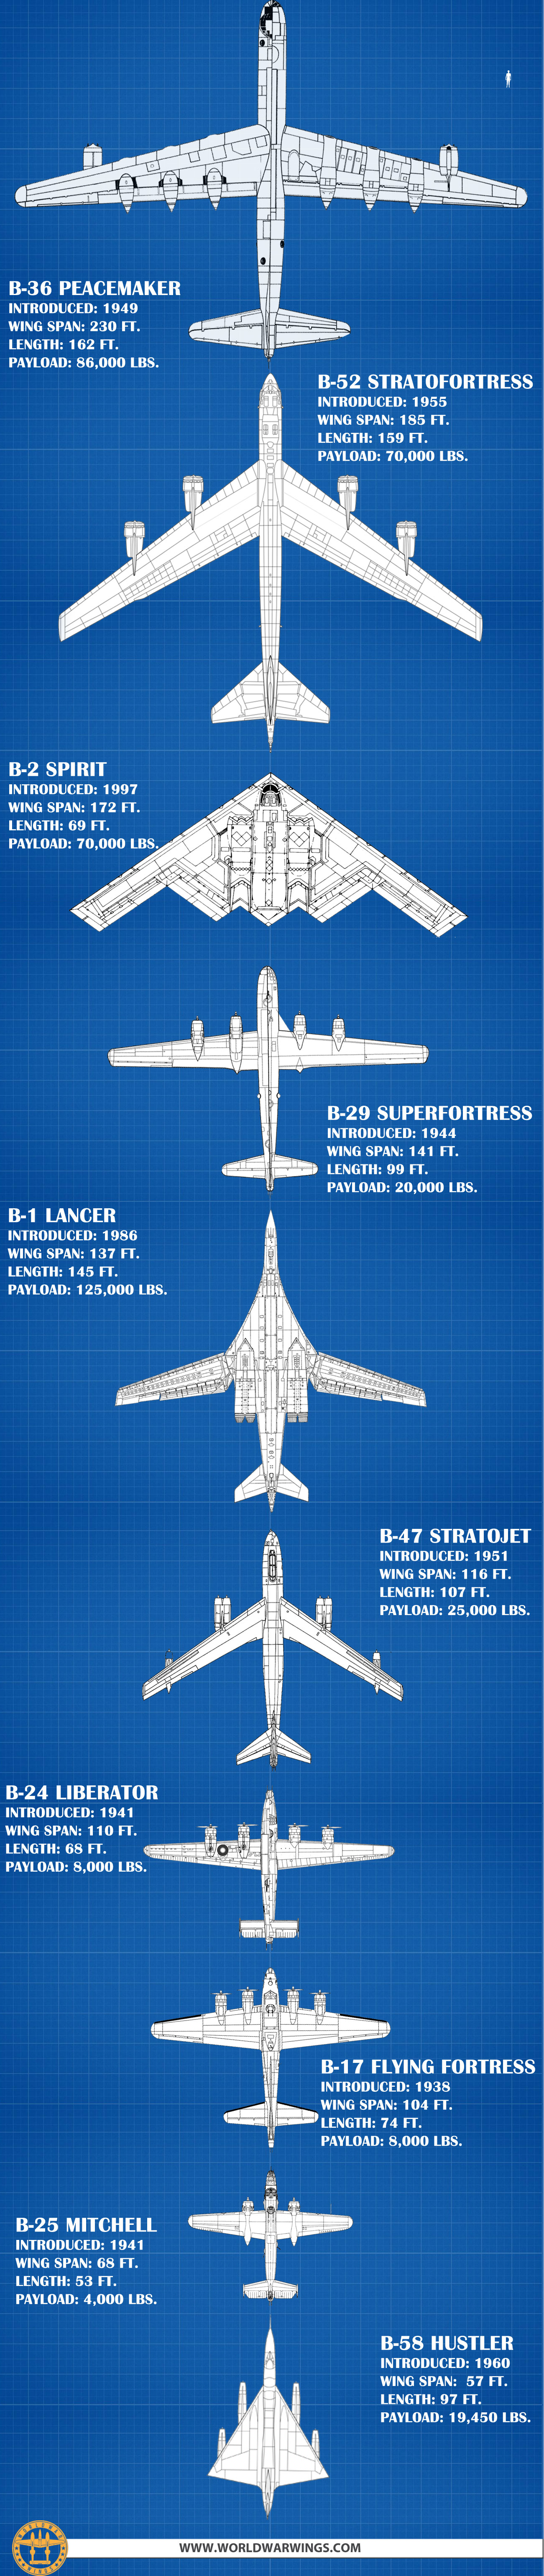 bombers-size-comparison-infographic